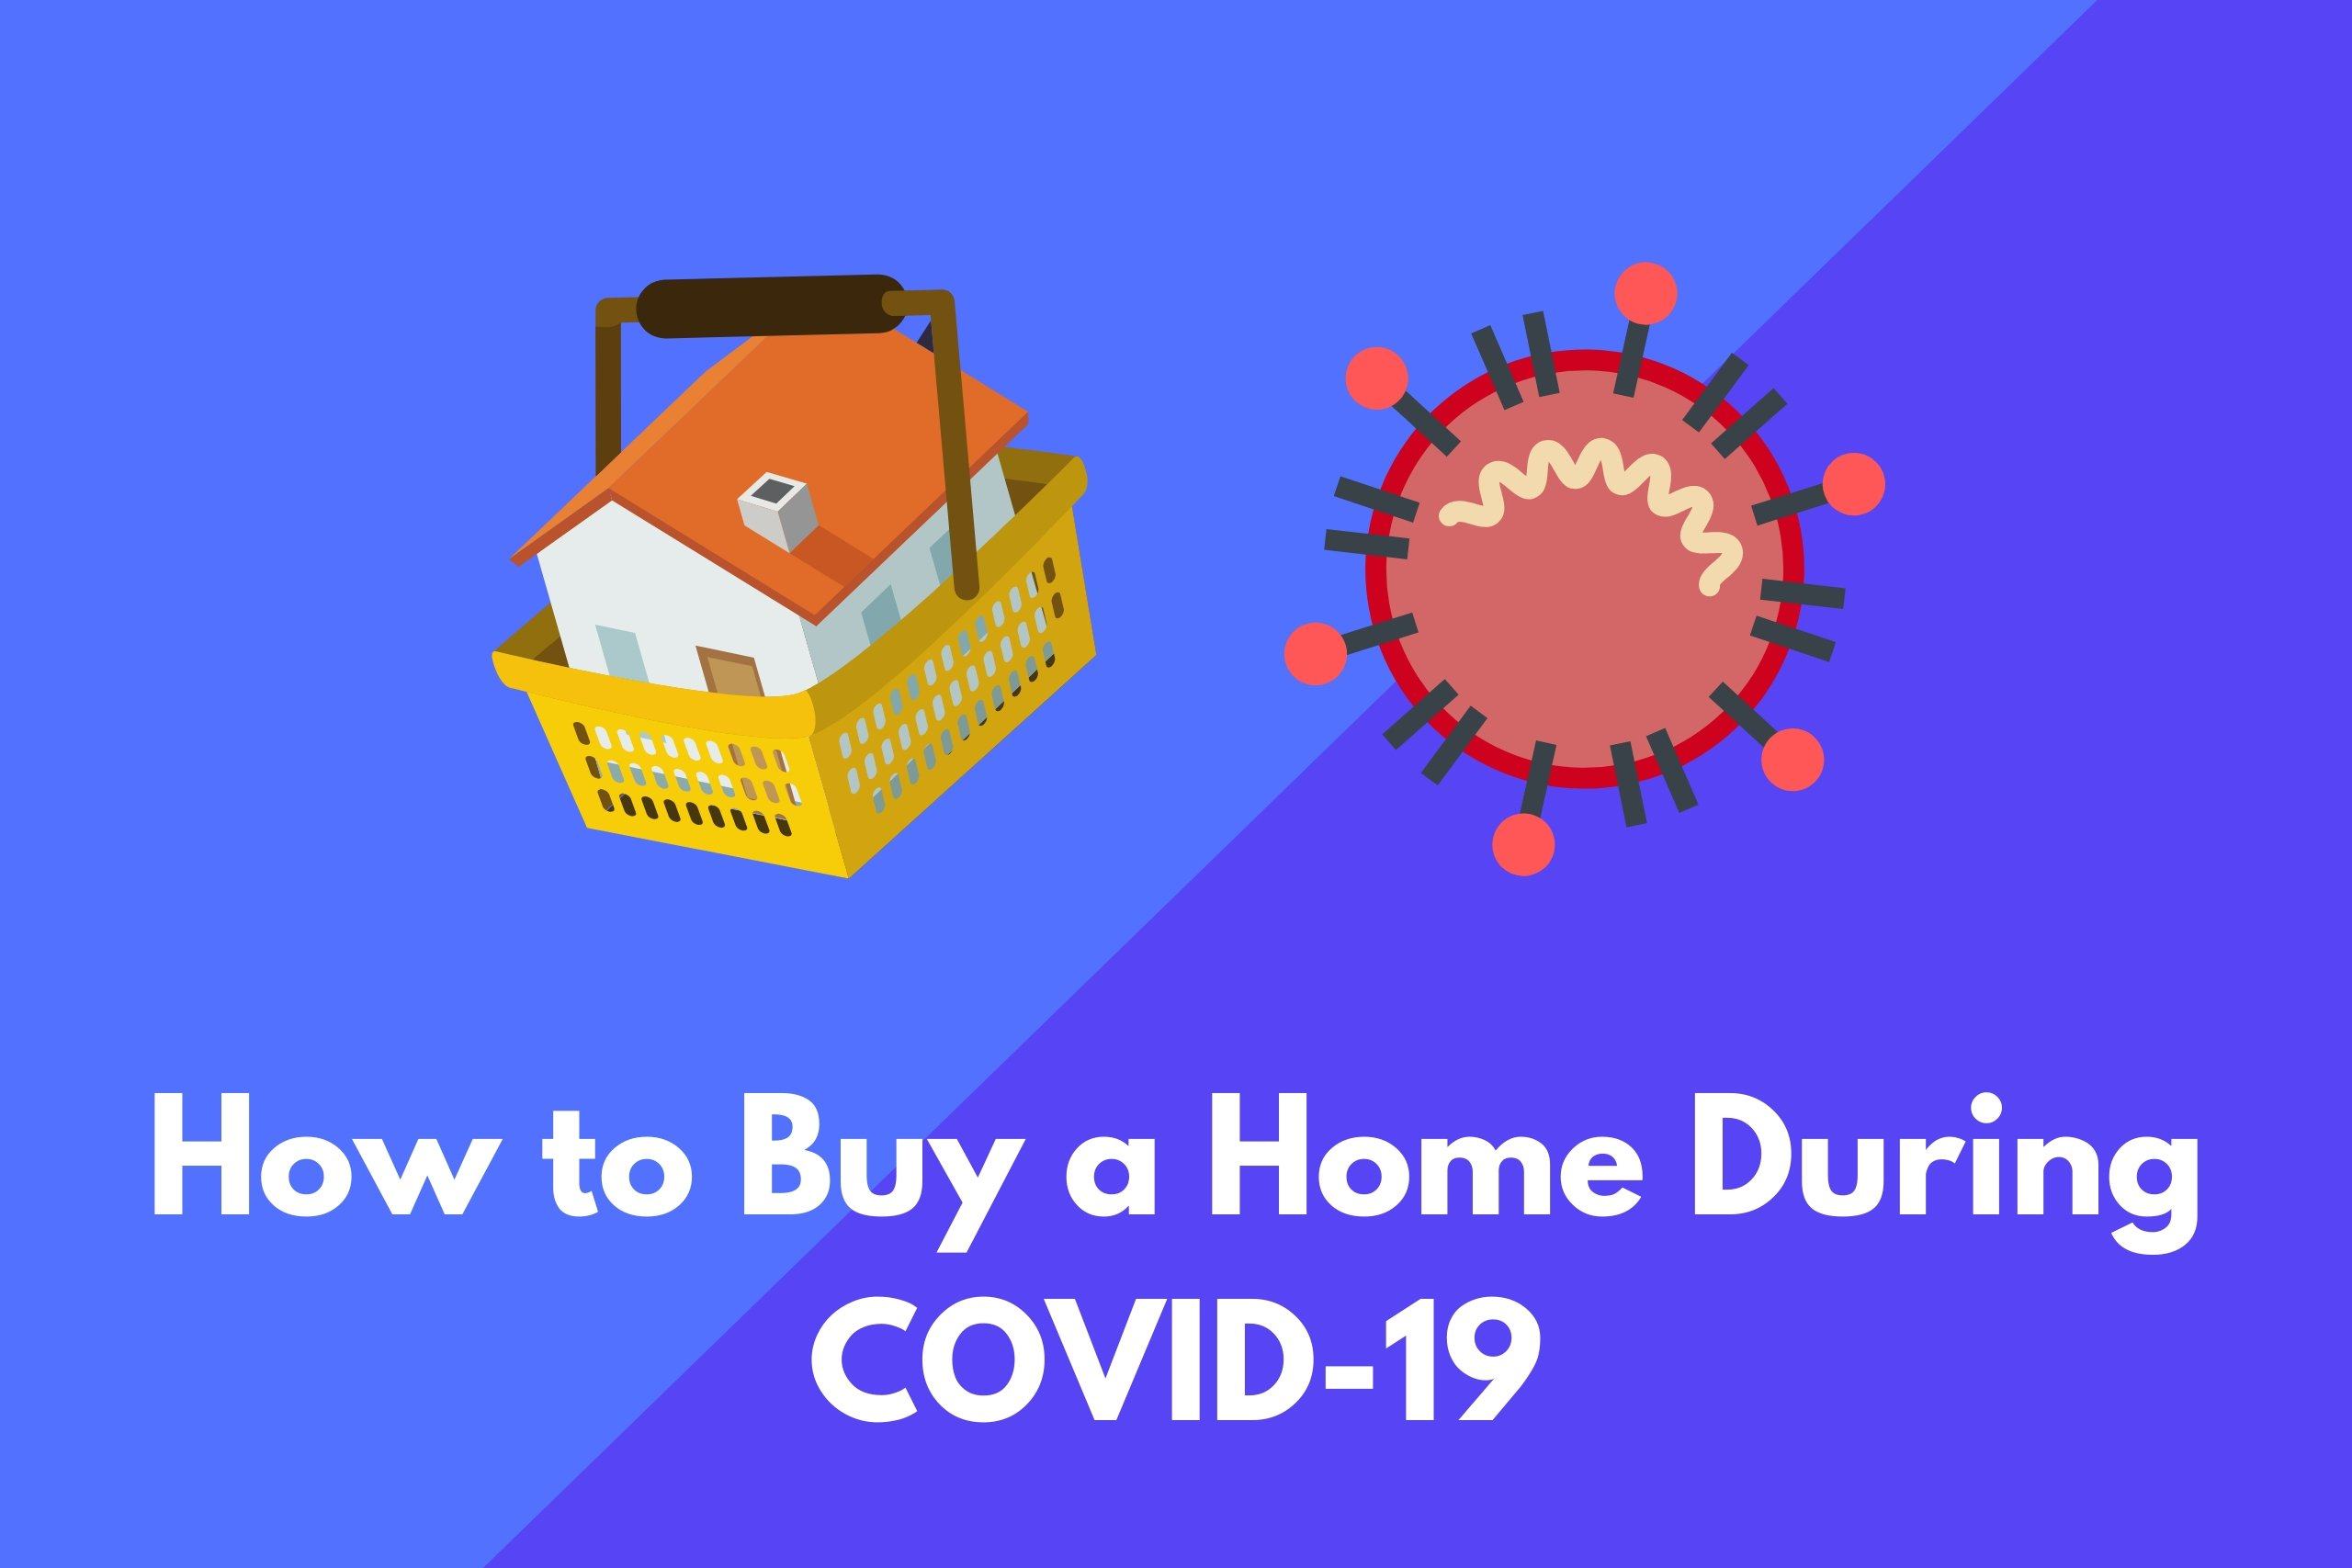 how to buy a home during covid-19